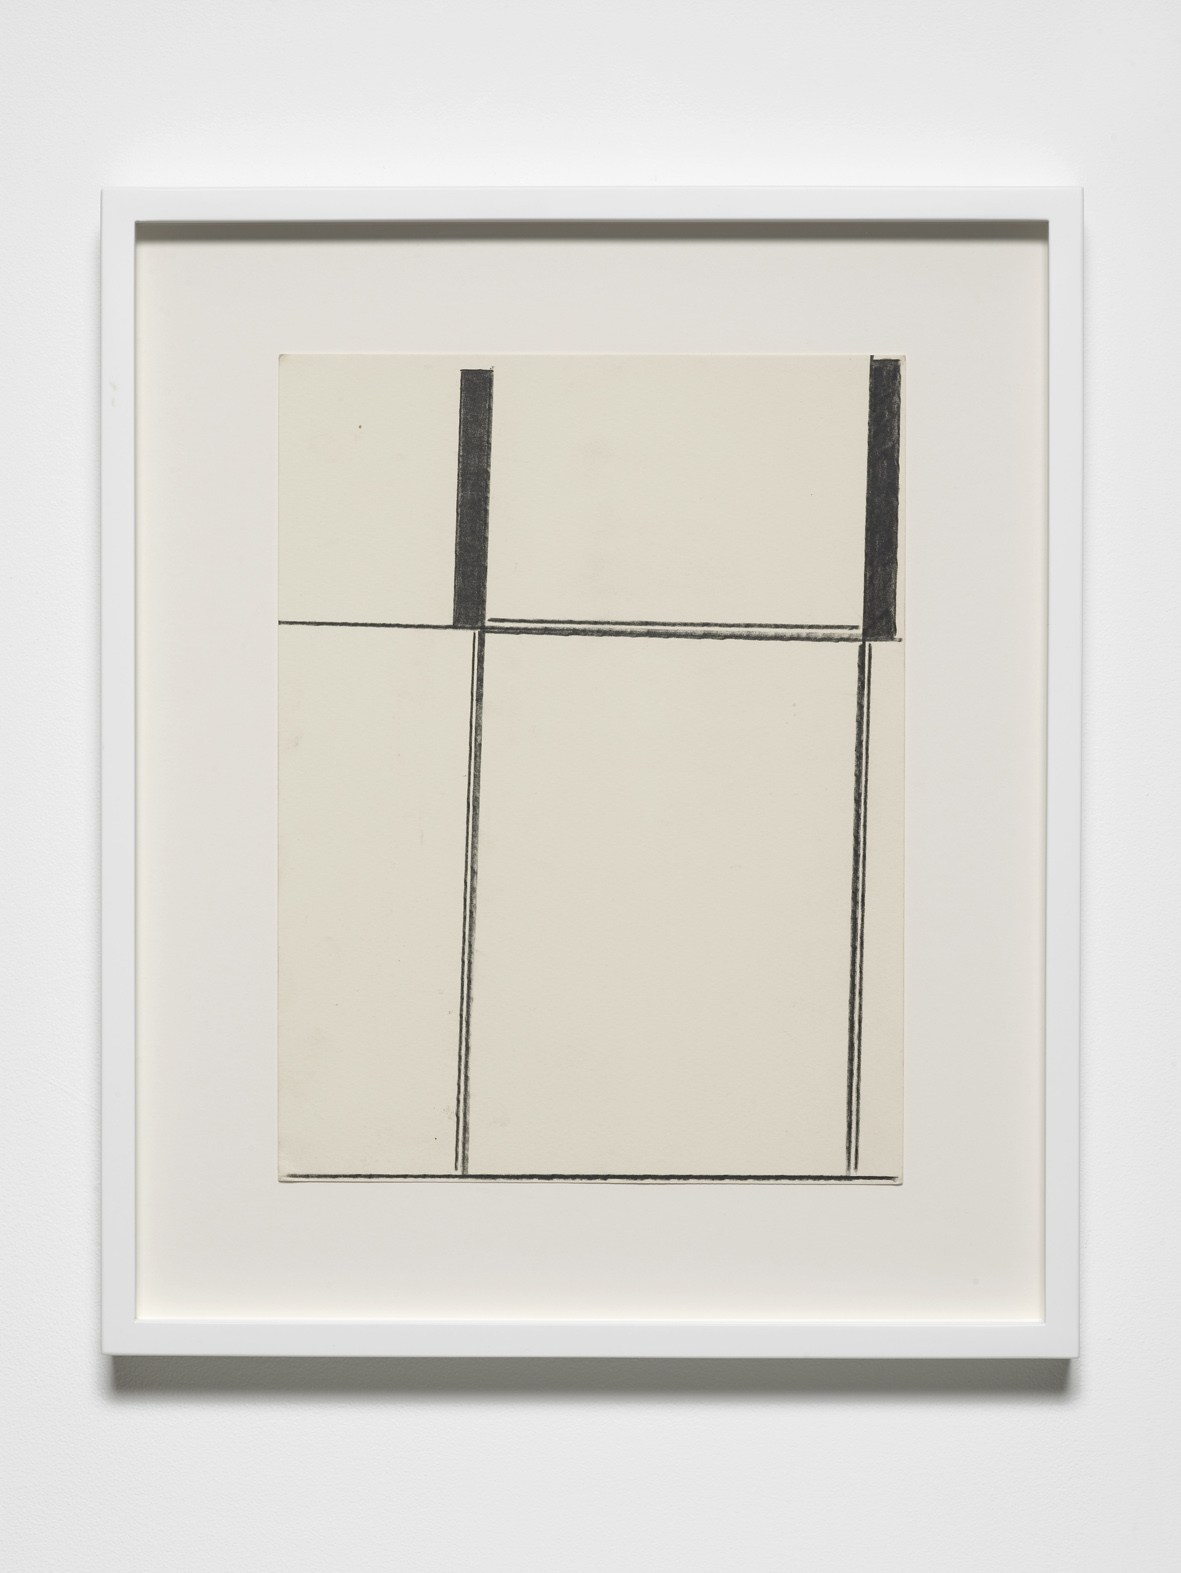 Untitled 2015 Pencil on paper 30 x 23 cm / 11.8 x 9 in unframed 42.6 x 35.6 cm / 16.8 x 14 in framed